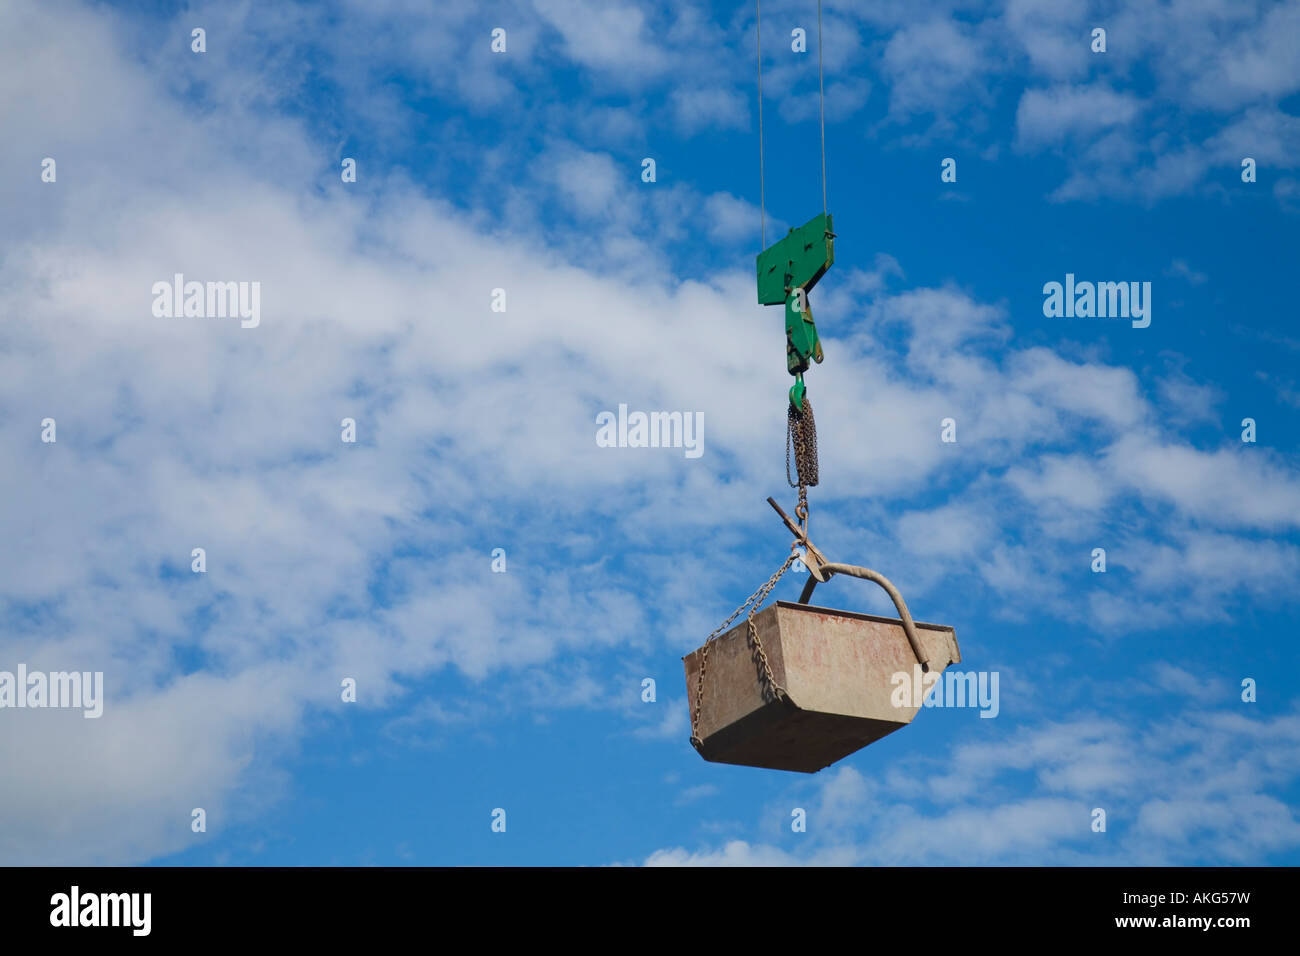 Crane bucket suspended by wires in mid-air against blue sky - Stock Image